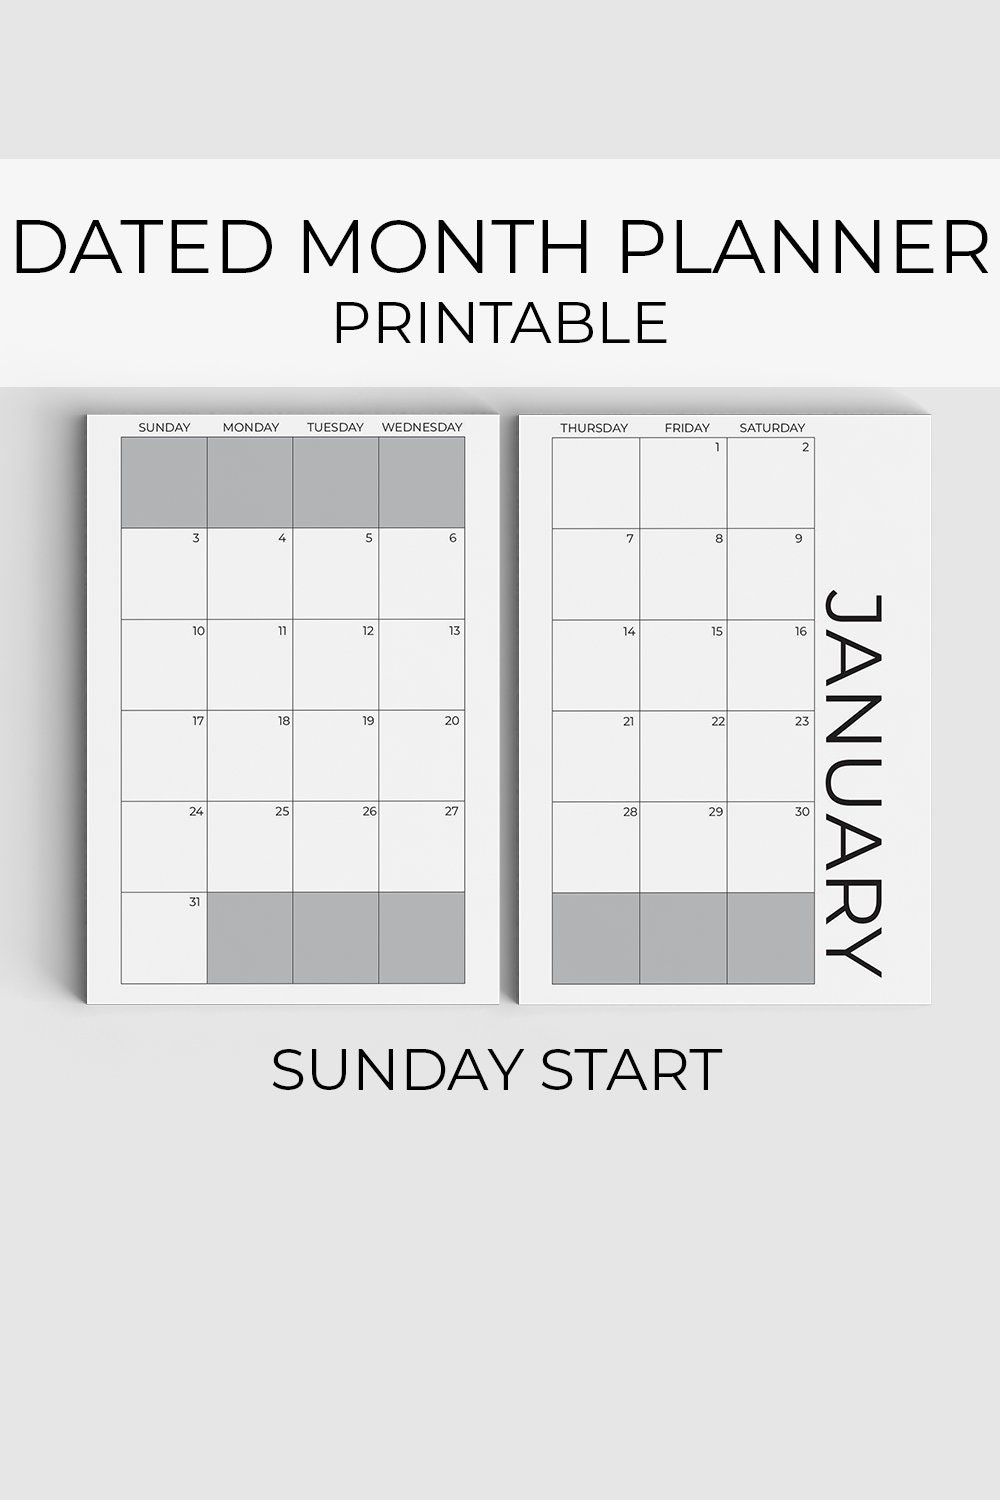 2021 Monthly planner printable, Sunday start, Dated ...